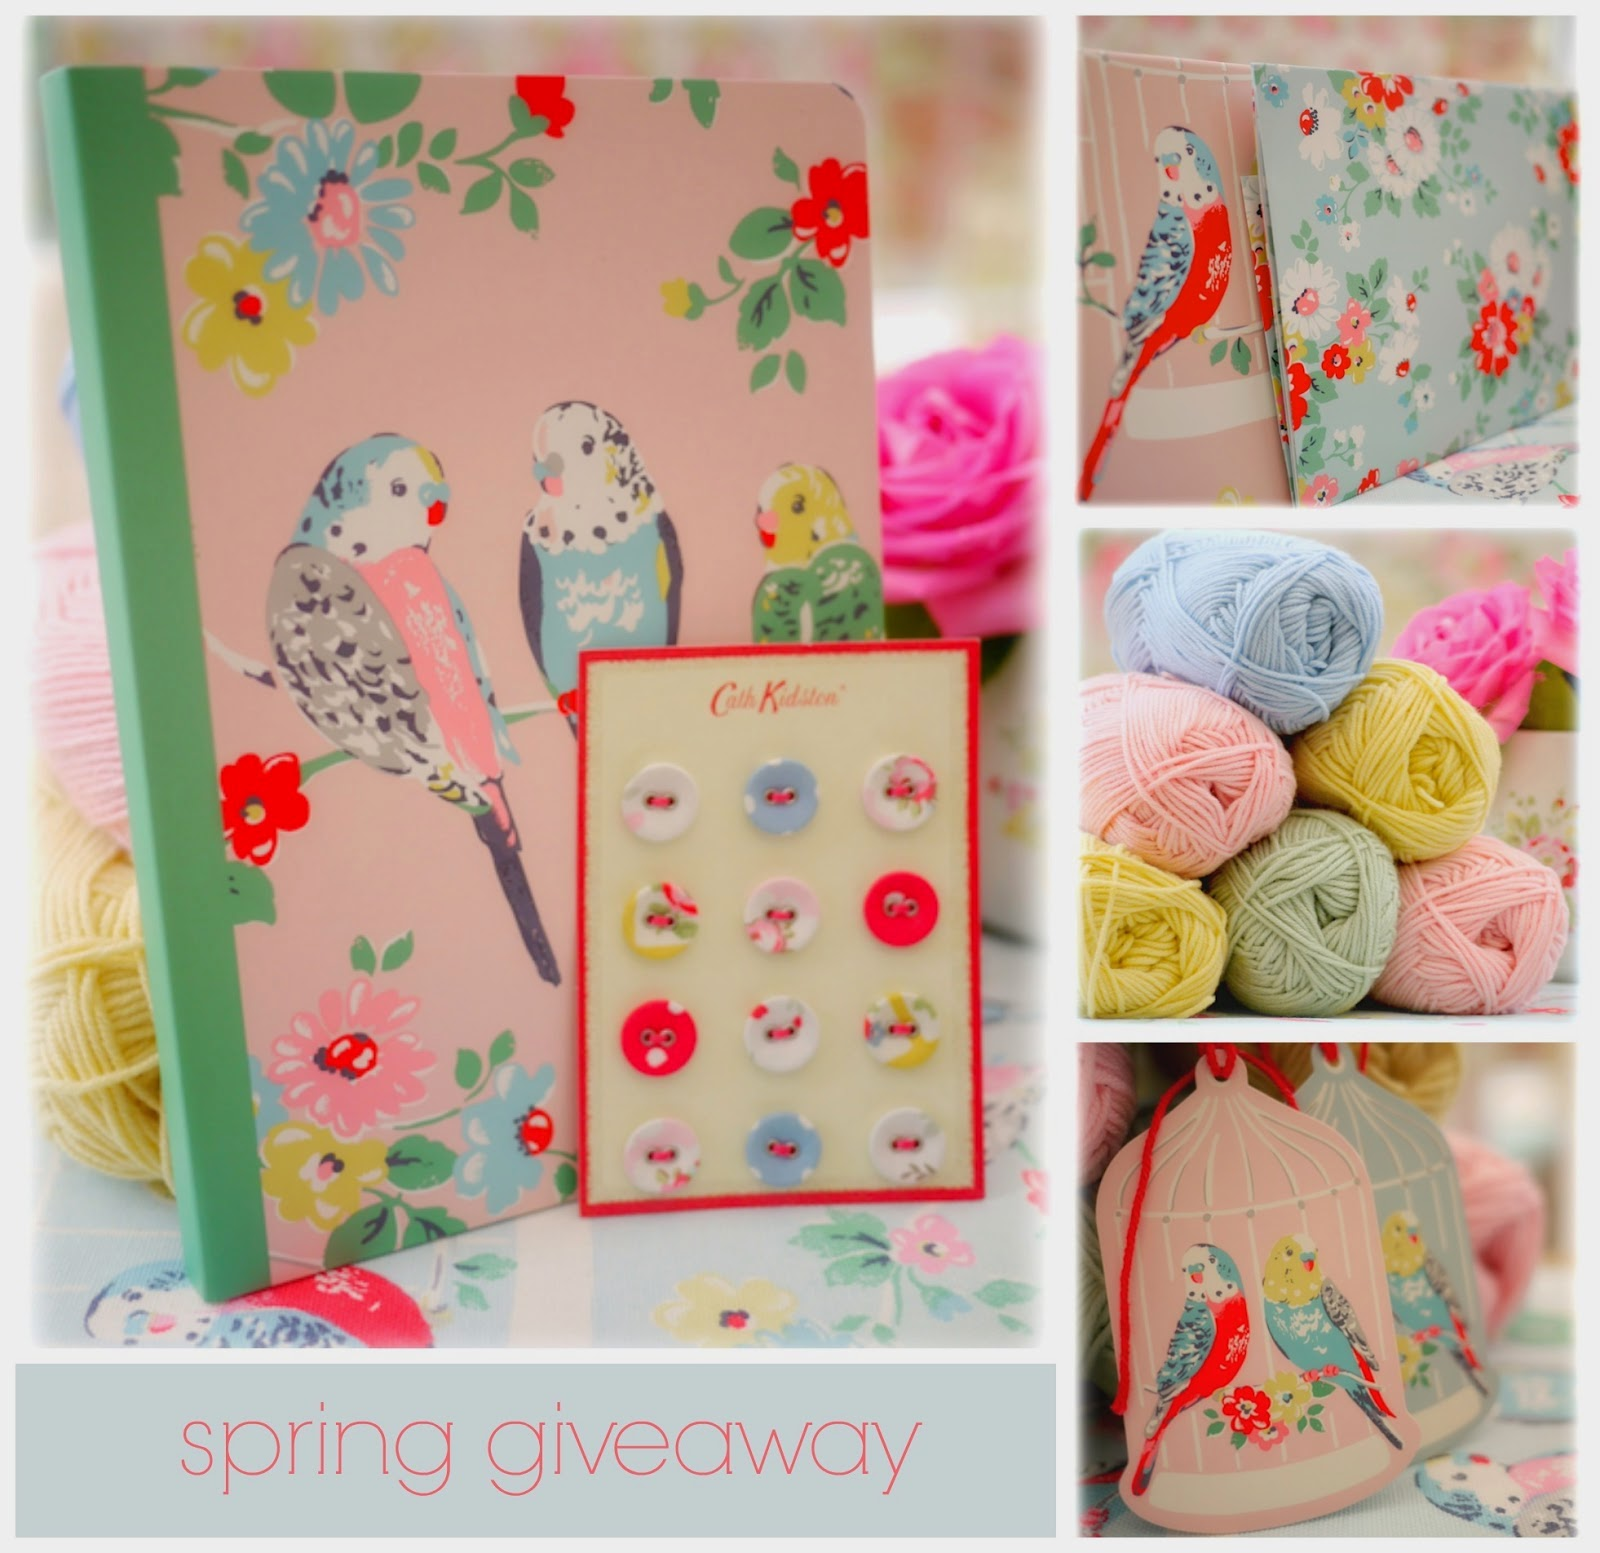 Fabulous giveaway at